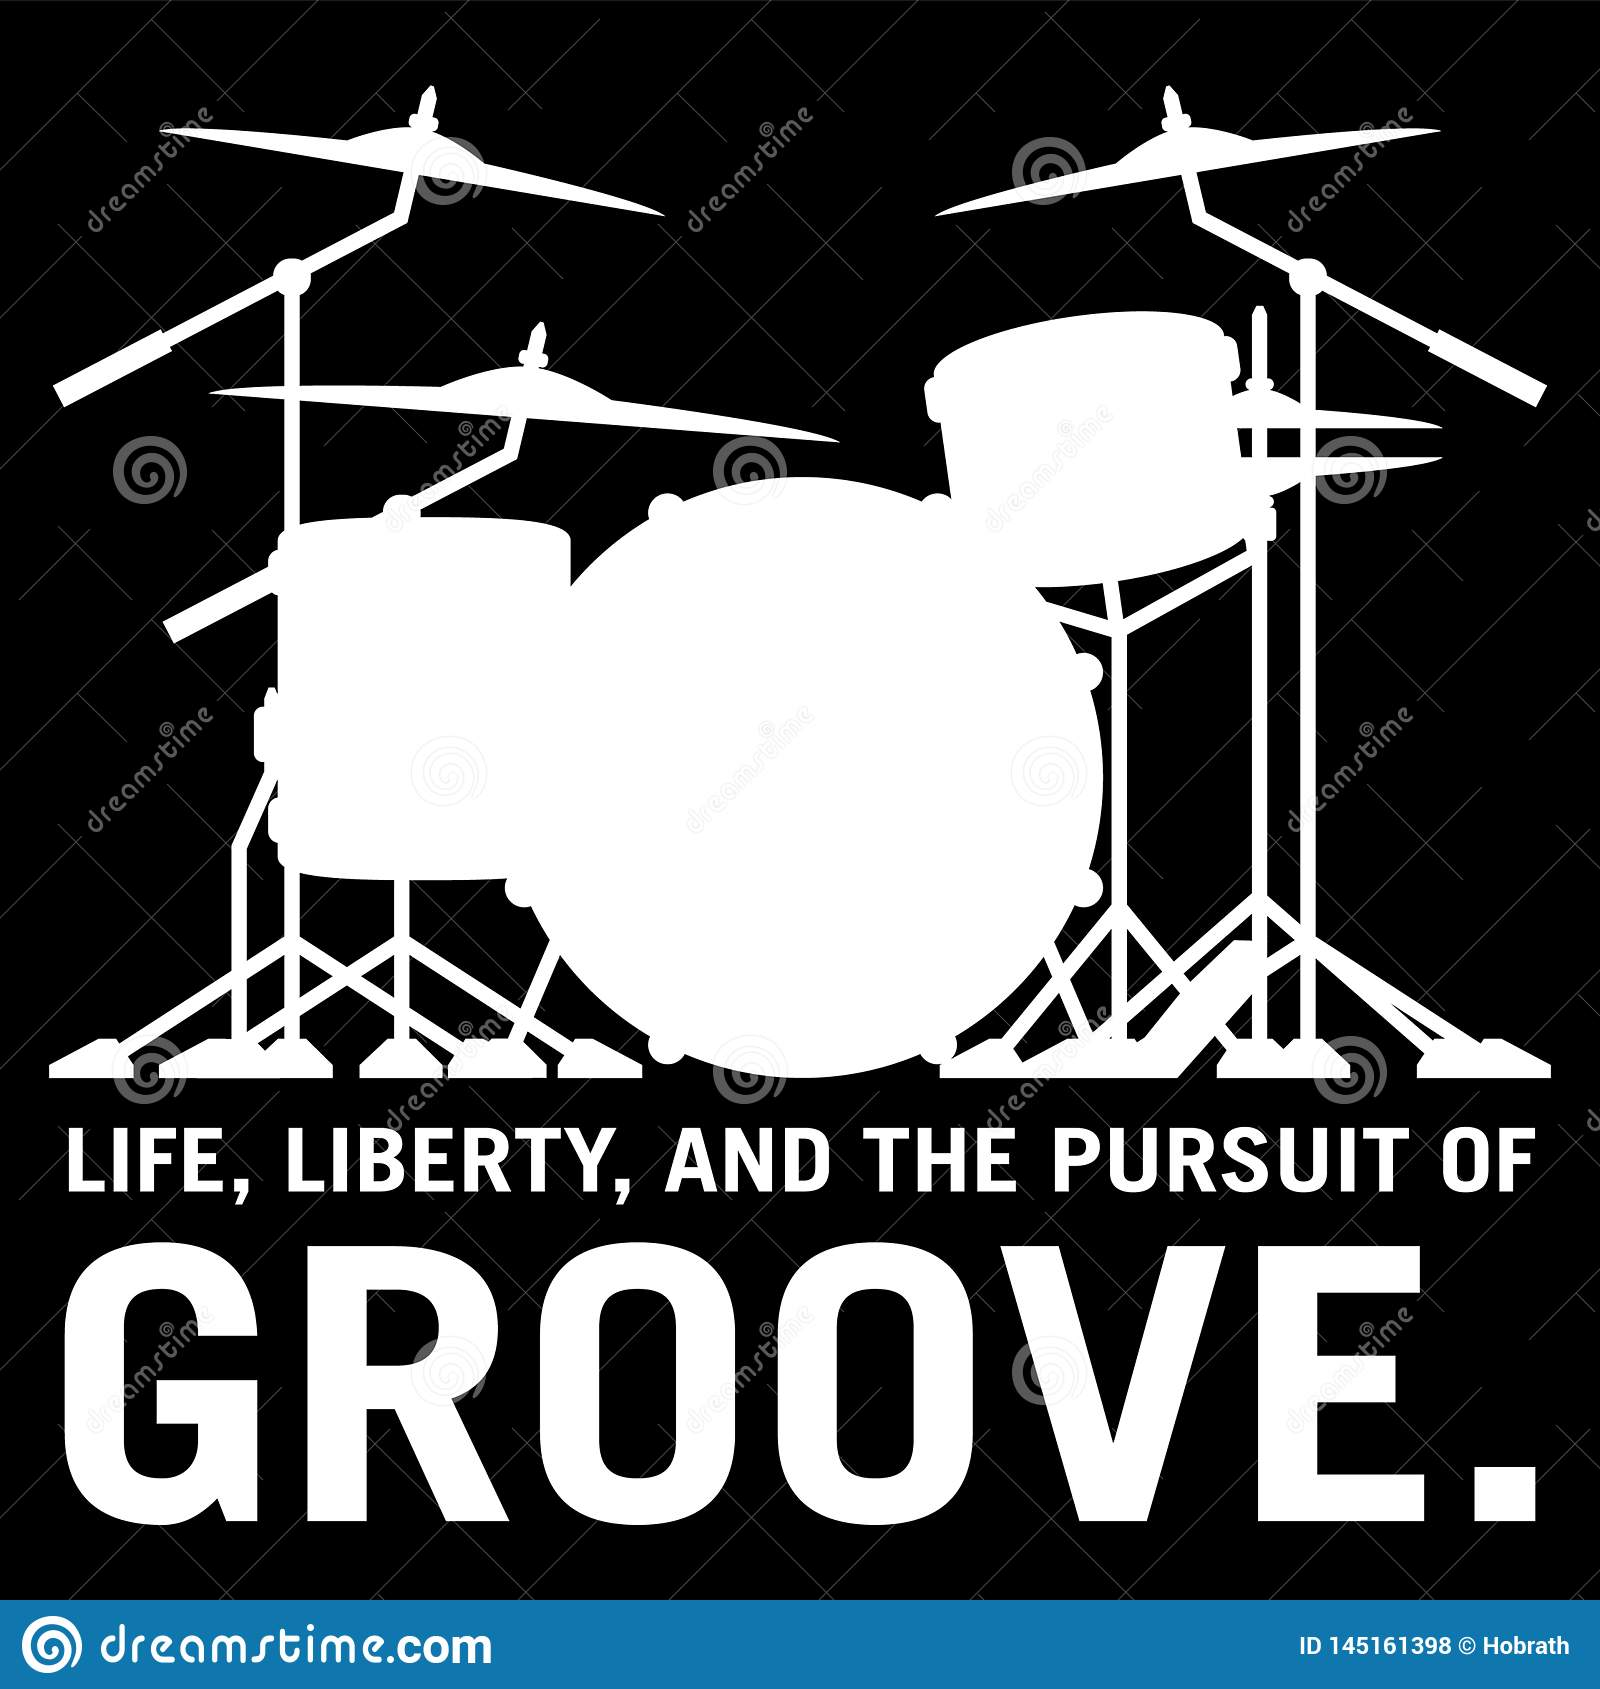 Life, Liberty, and the pursuit of Groove, drummer`s drum set silhouette isolated vector illustration